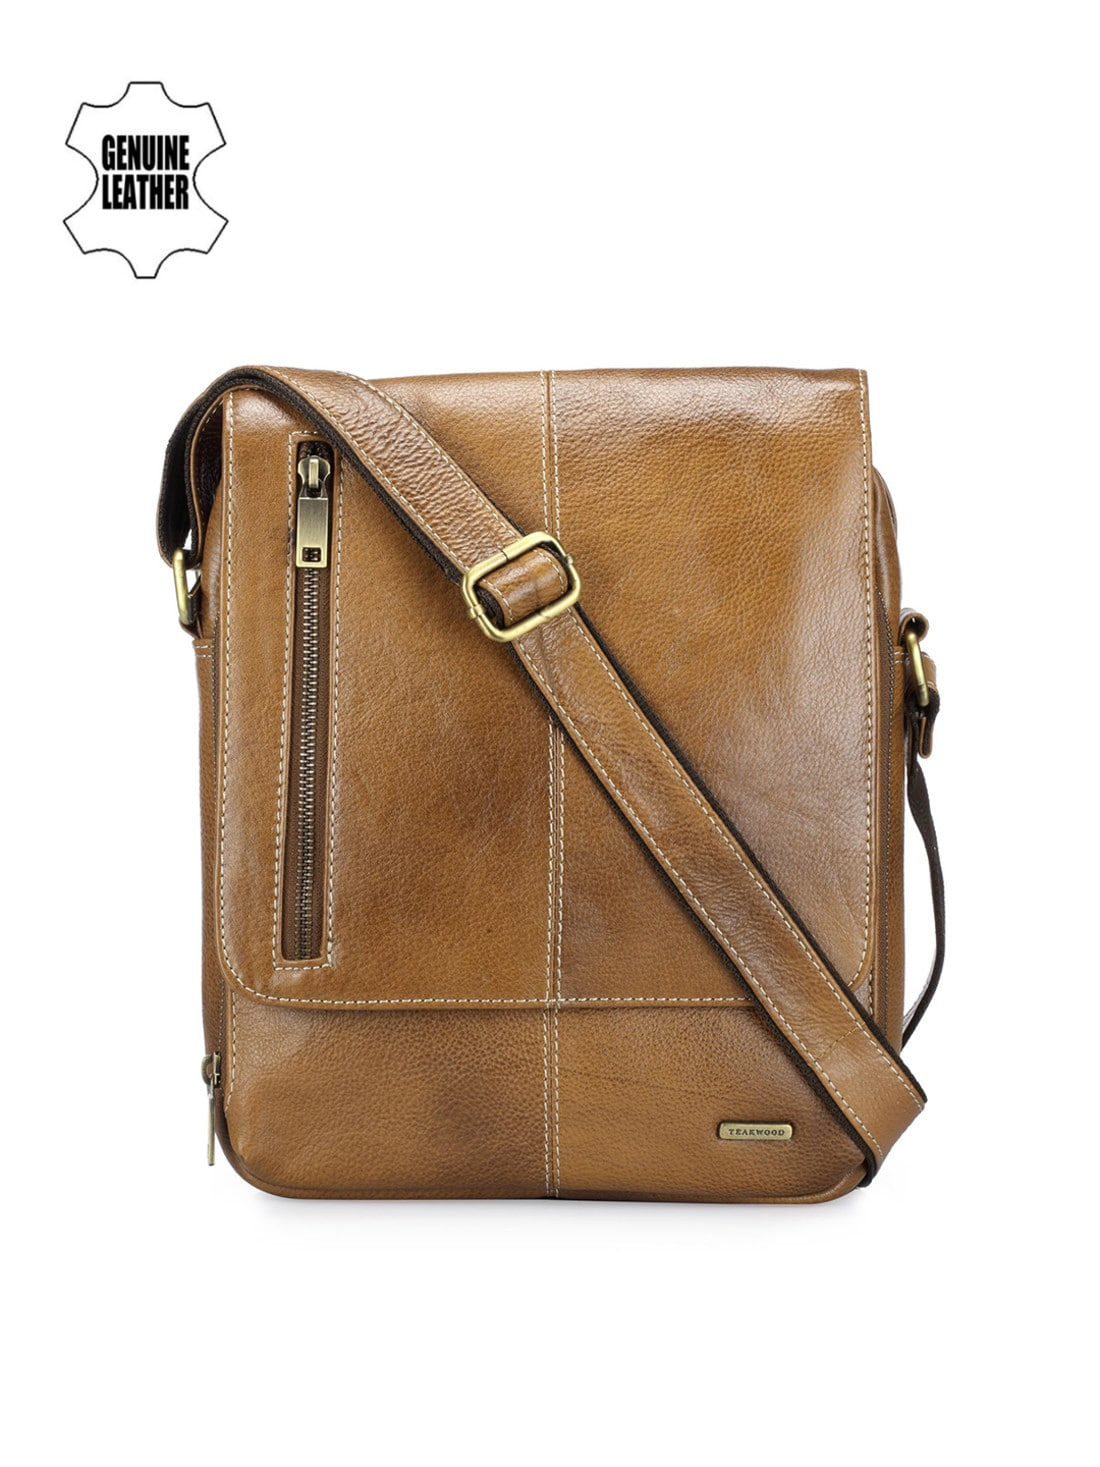 27f7150de5 Leather Messenger Bags - Buy Leather Messenger Bags online in India at best  price